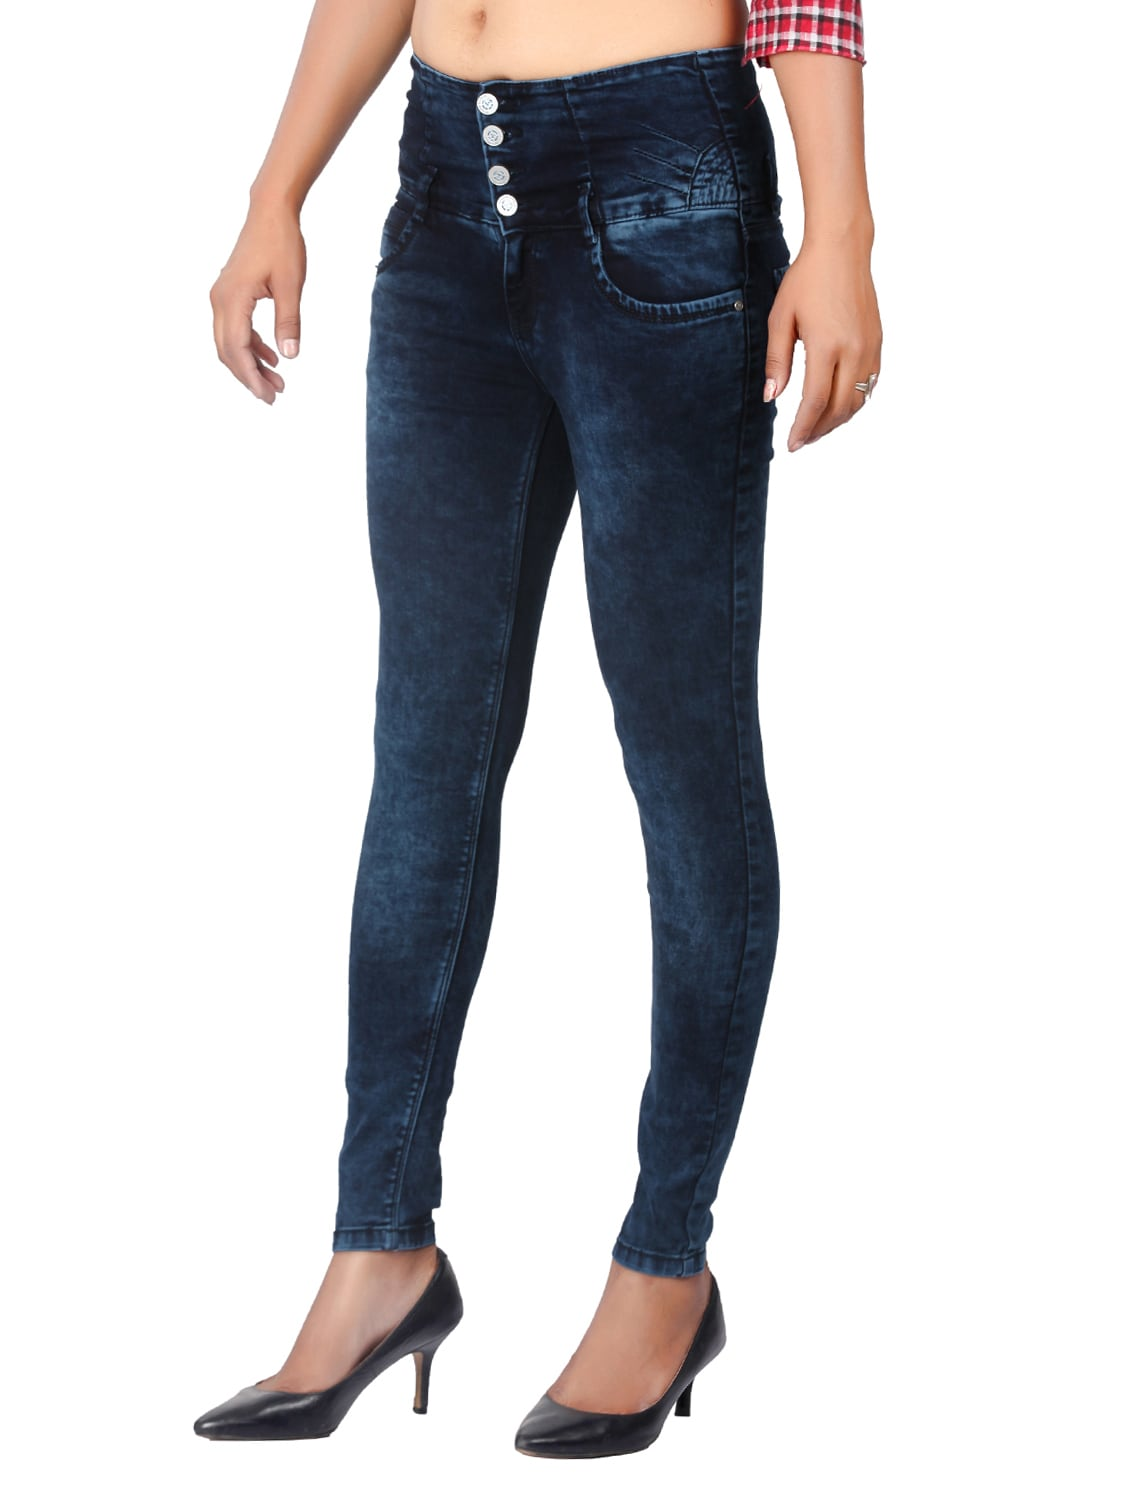 3aff66a6d0692 Buy Dark Blue Denim Jeans for Women from Fck-3 for ₹1518 at 2% off ...